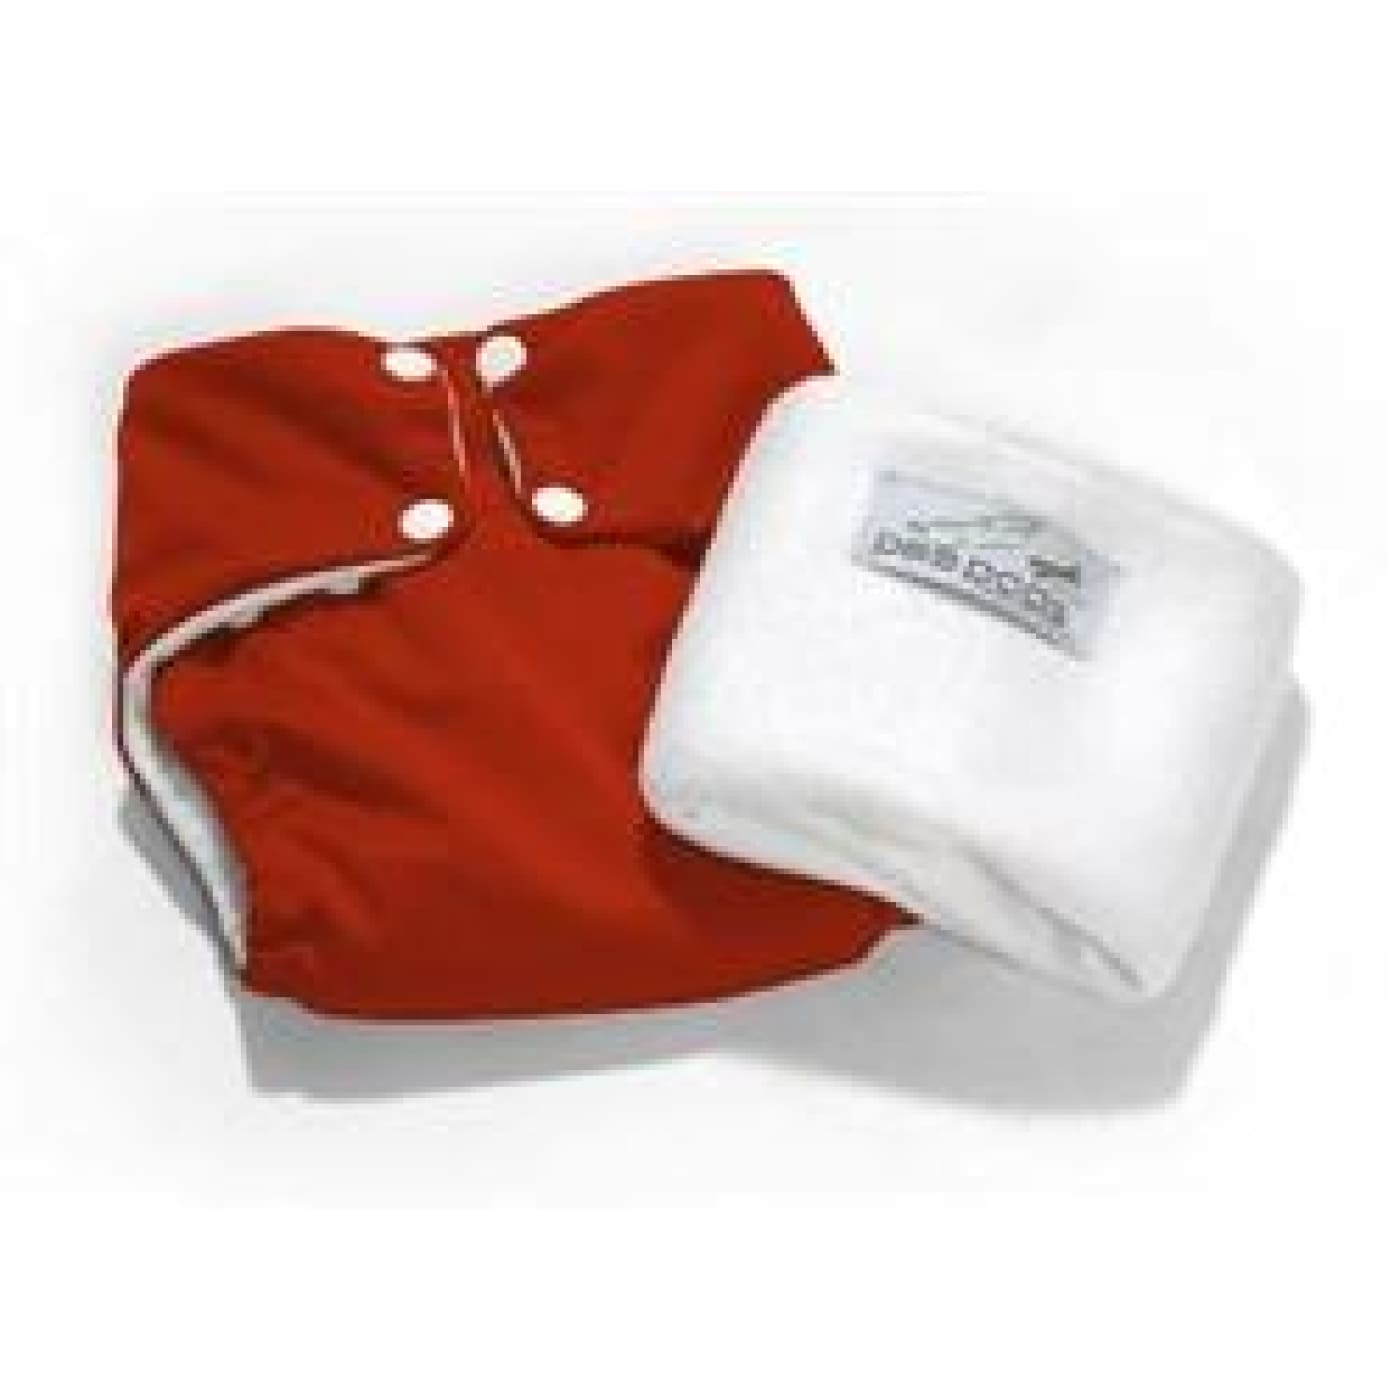 Pea Pods One Size Fits All Nappy - Red - BATHTIME & CHANGING - NAPPIES/WIPES/ACC ECO RANGE